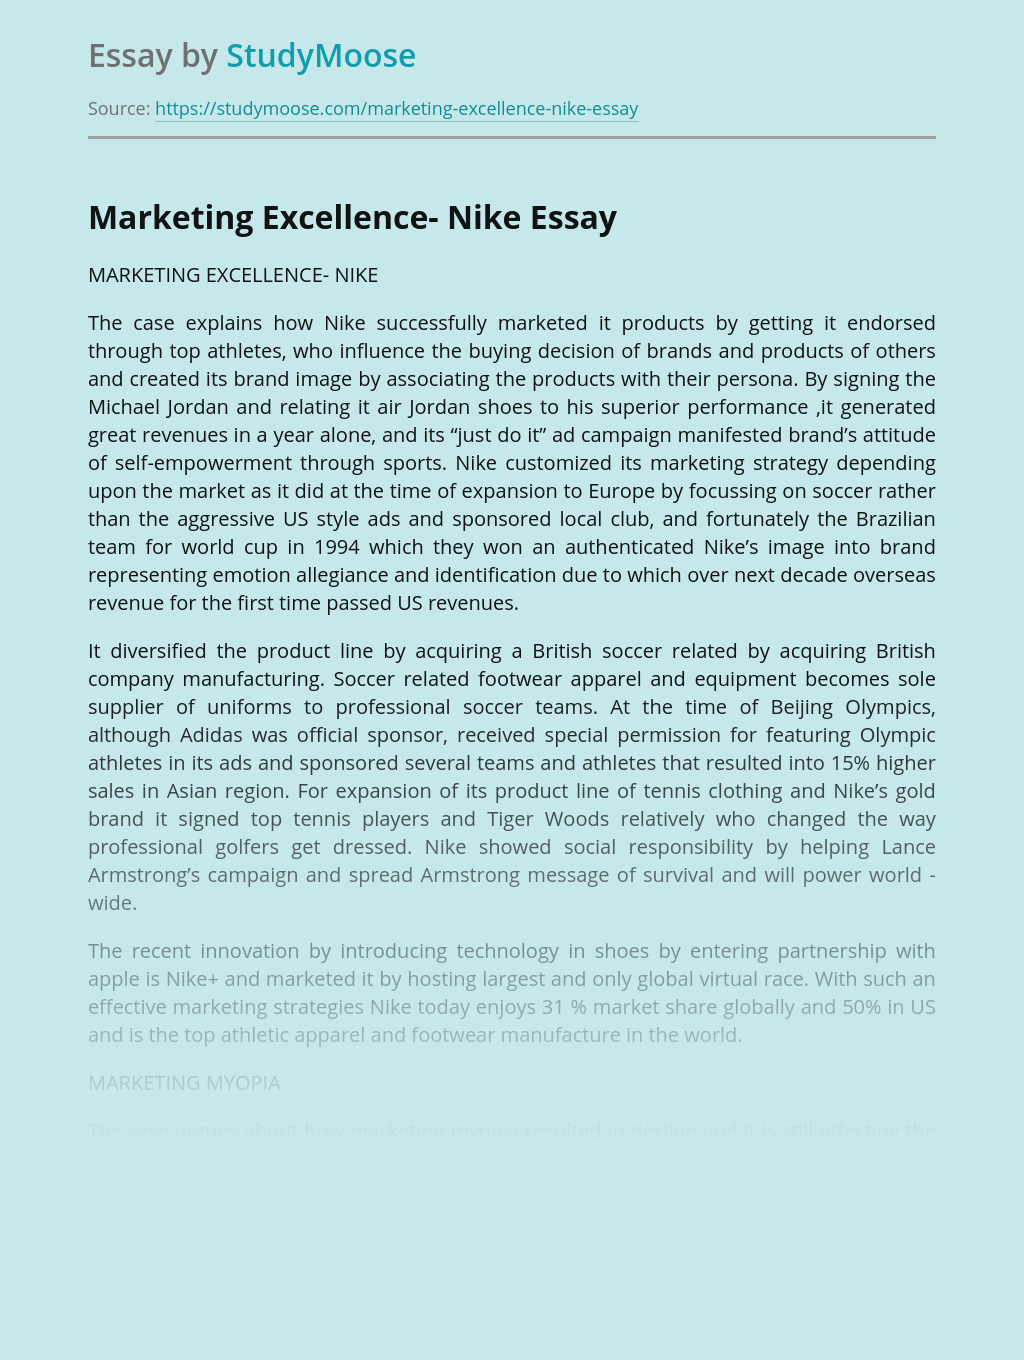 Marketing Excellence- Nike